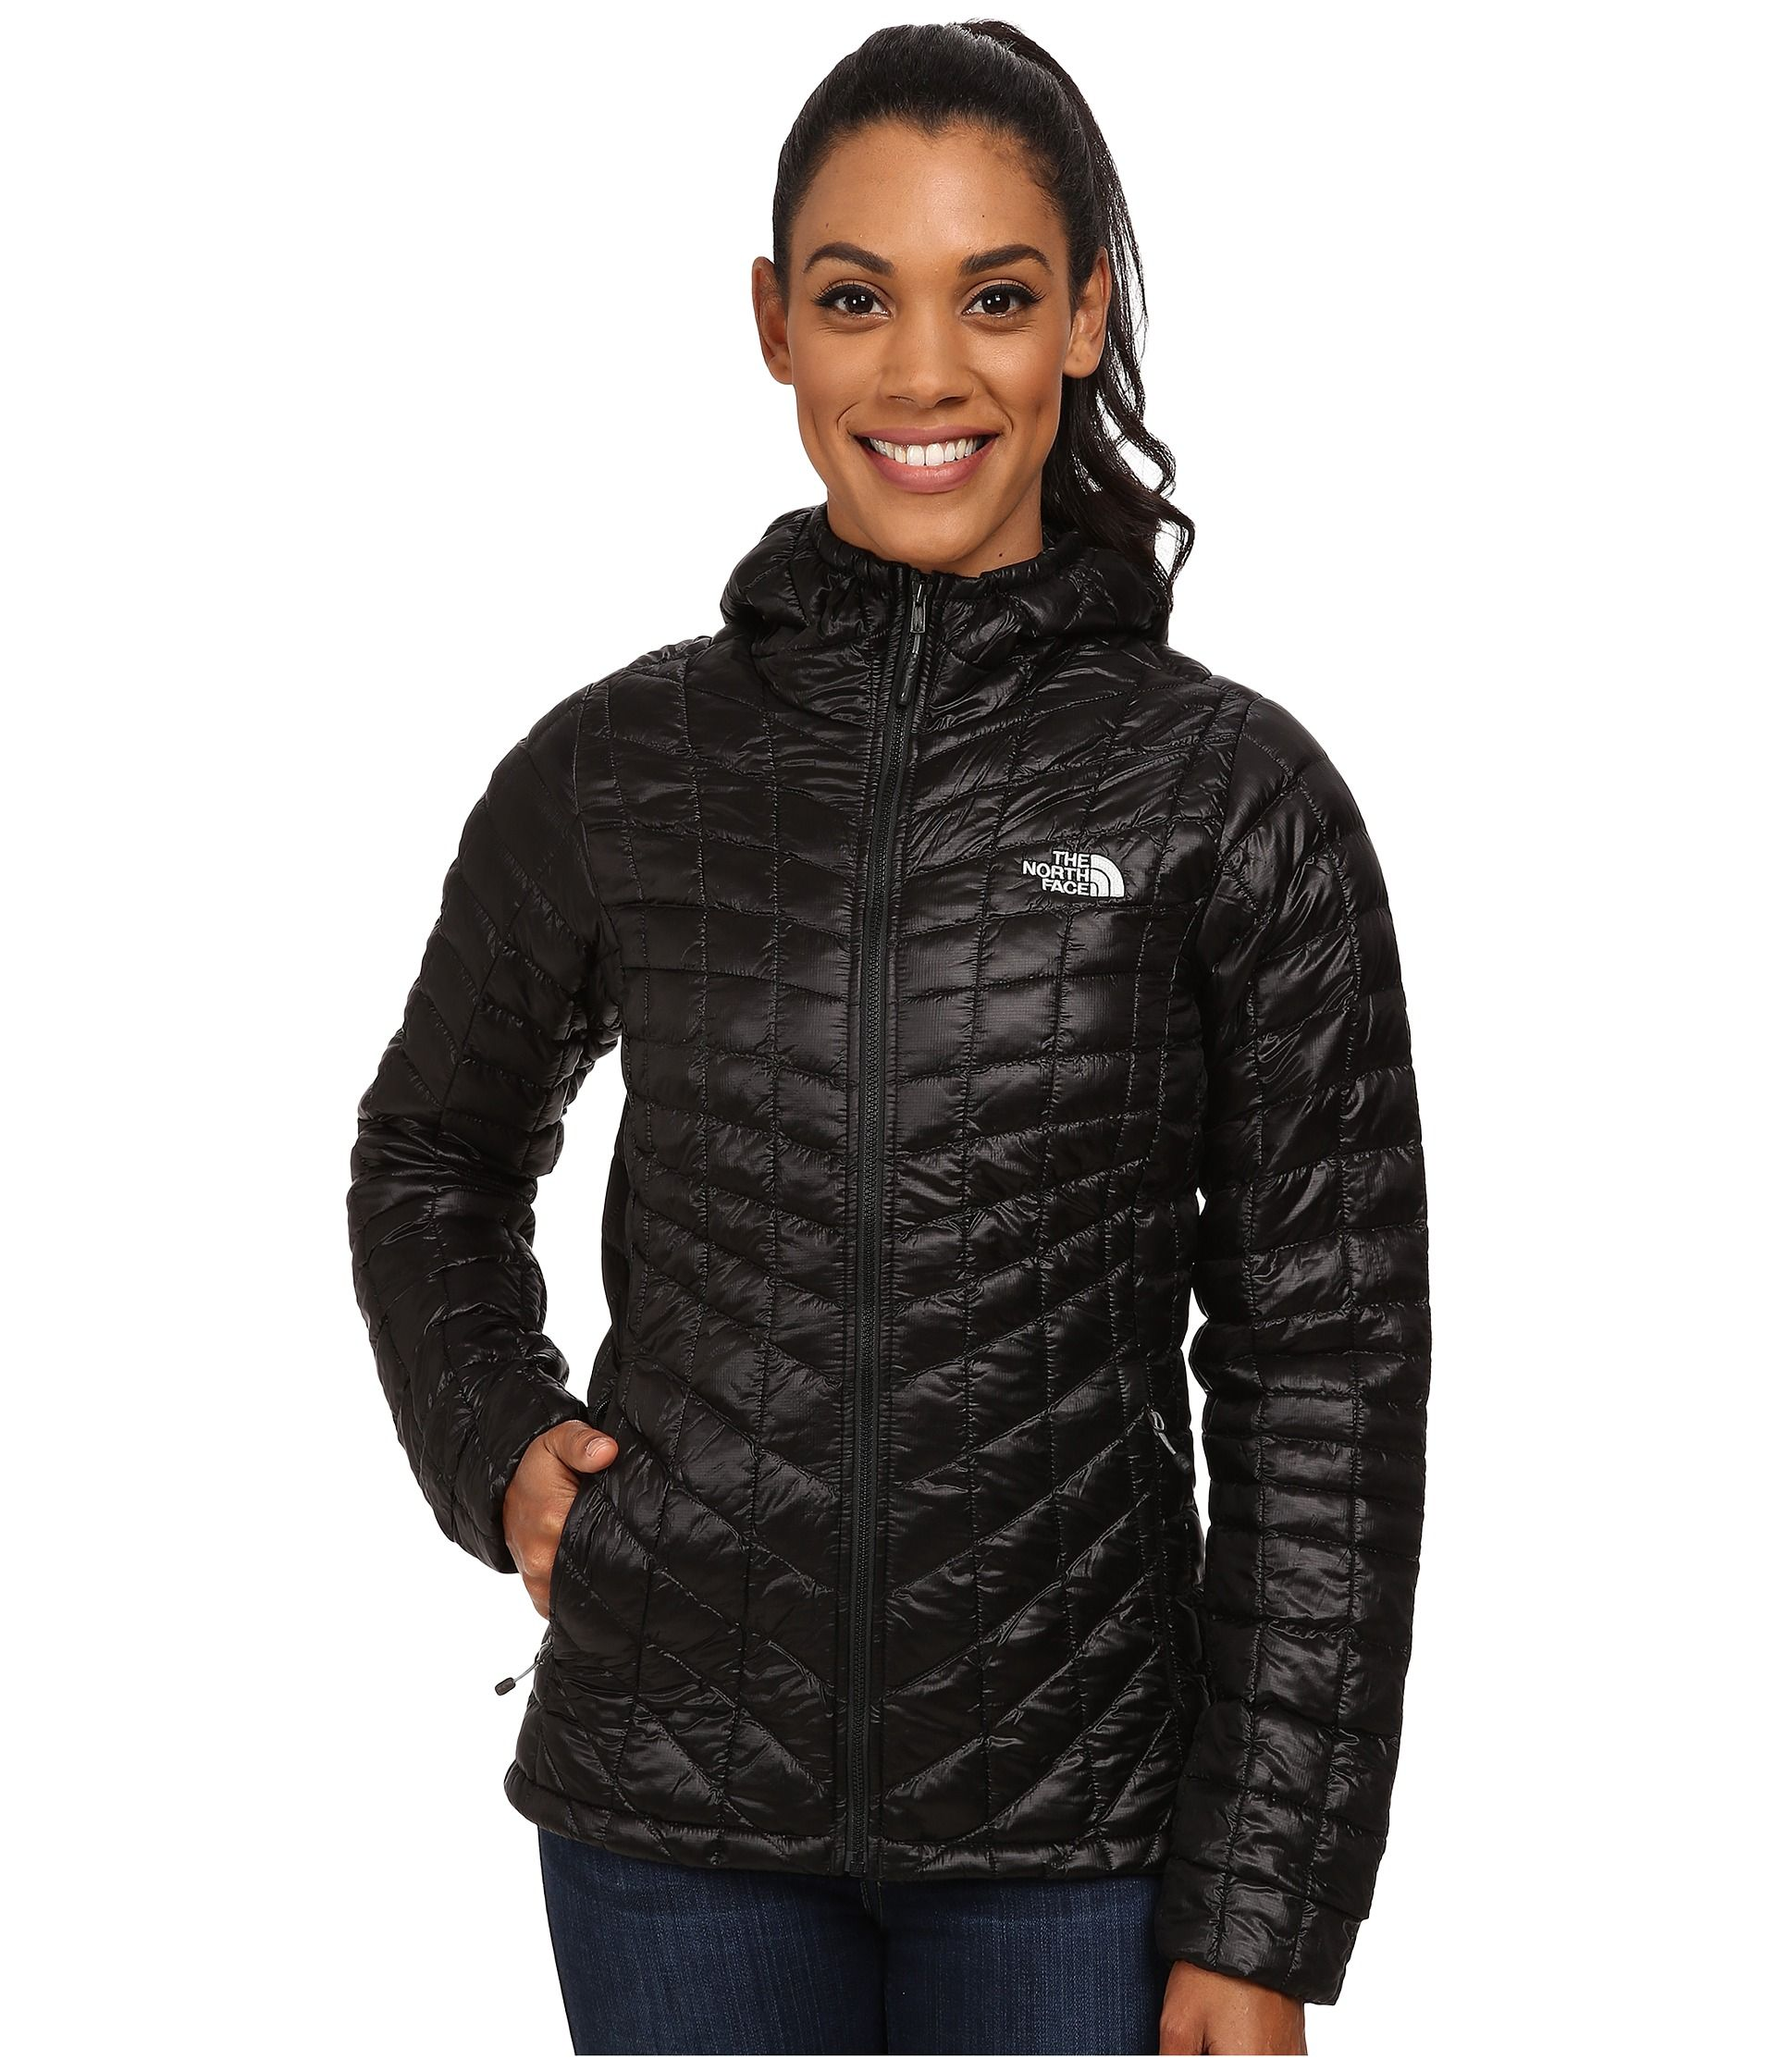 The North Face Thermoball Hoodie Womens Black Coat Black North Face Jacket Coats Jackets Women [ 2240 x 1920 Pixel ]